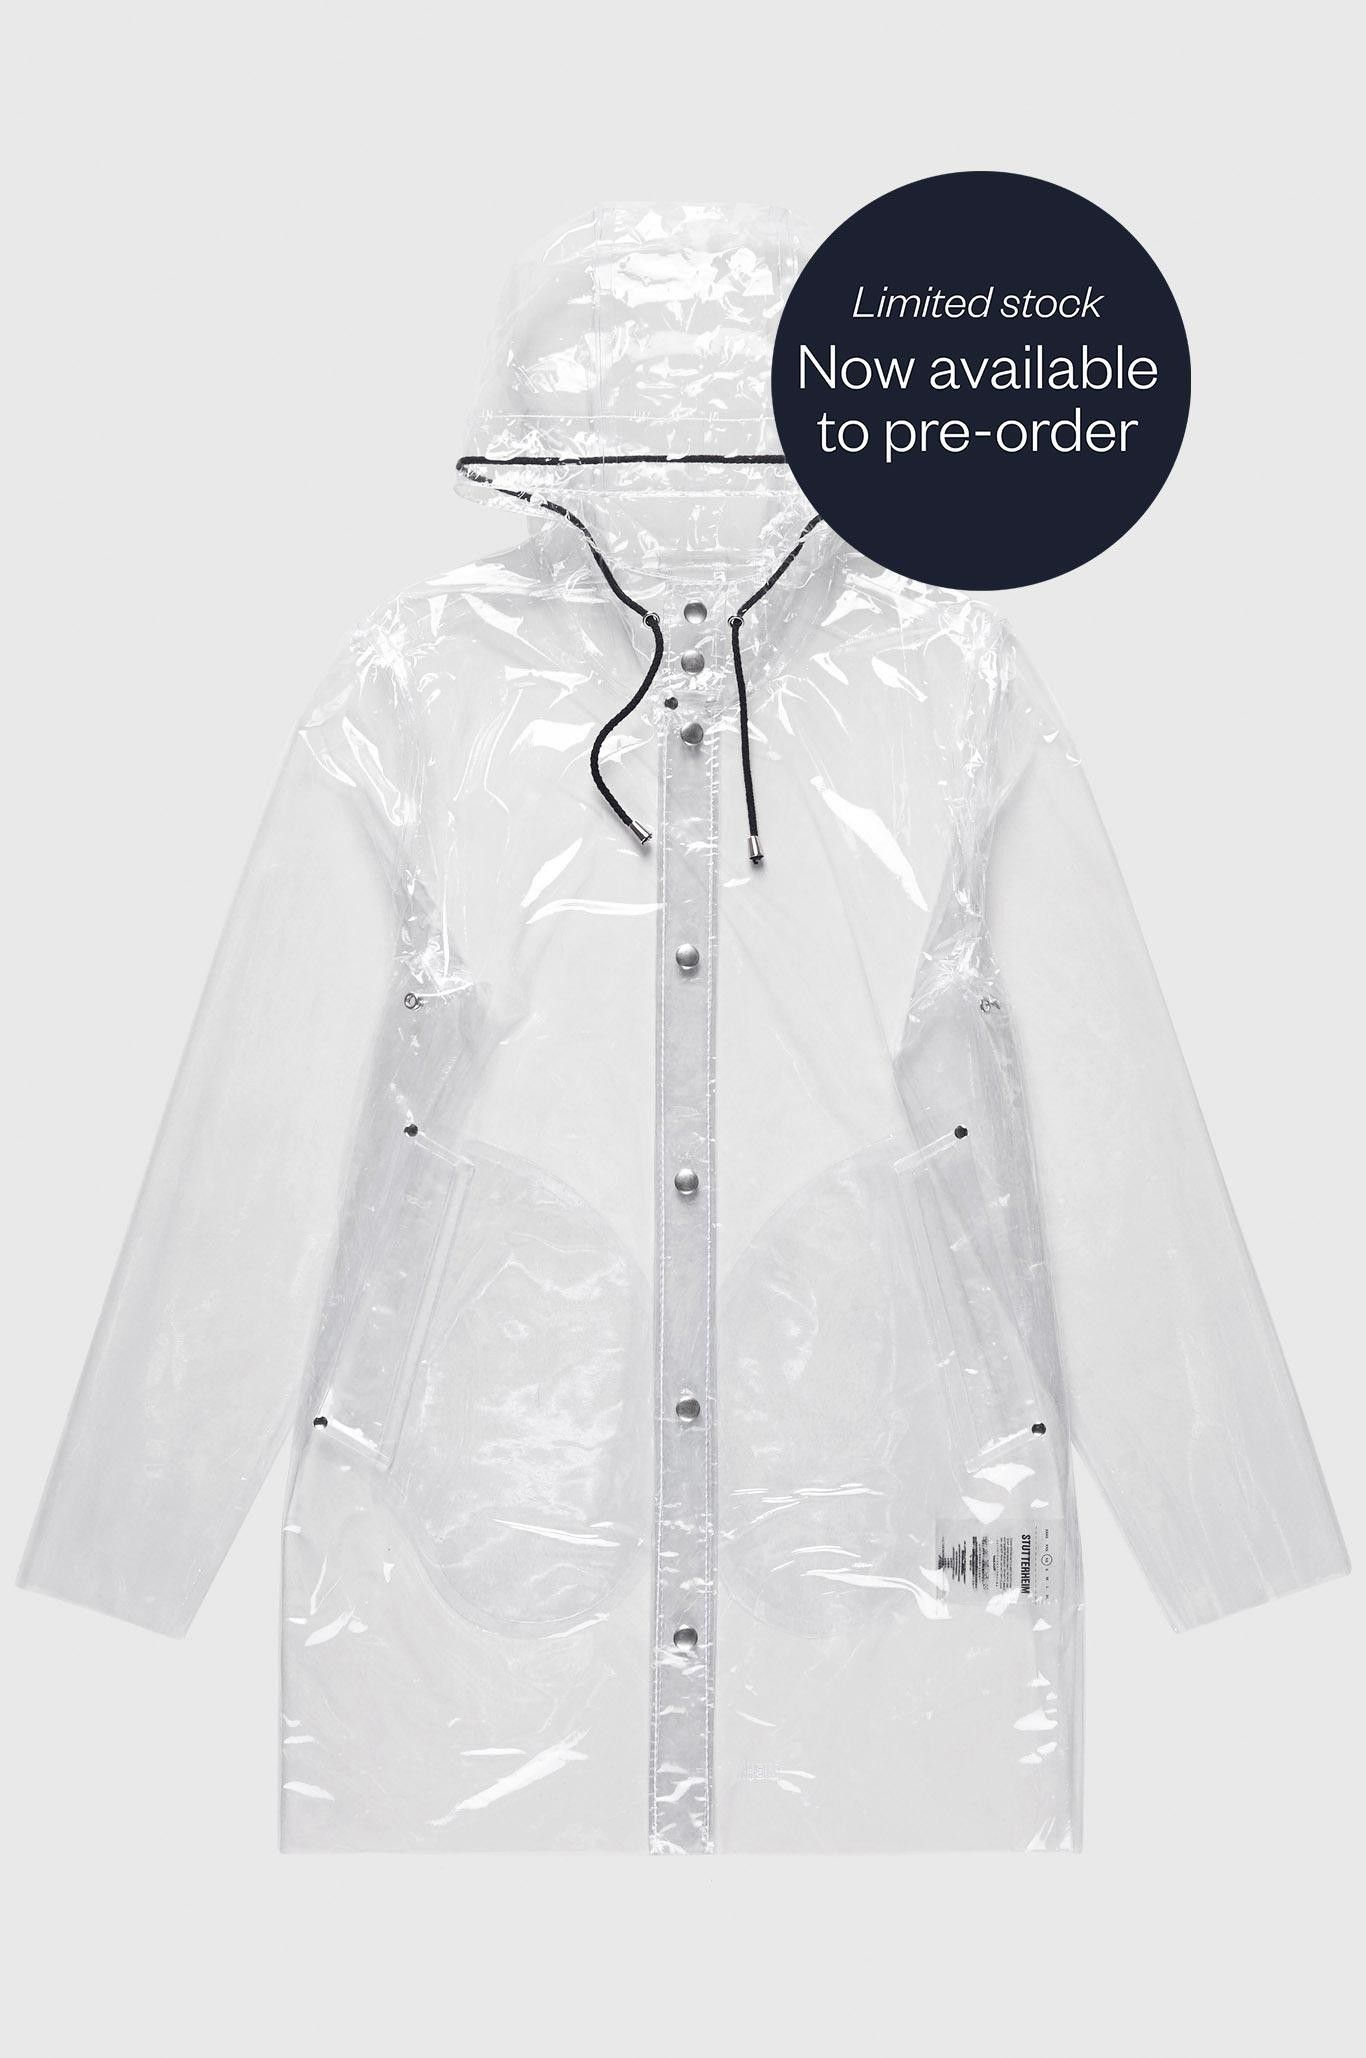 df325402a The Stockholm Transparent Raincoat is the latest update of our ...